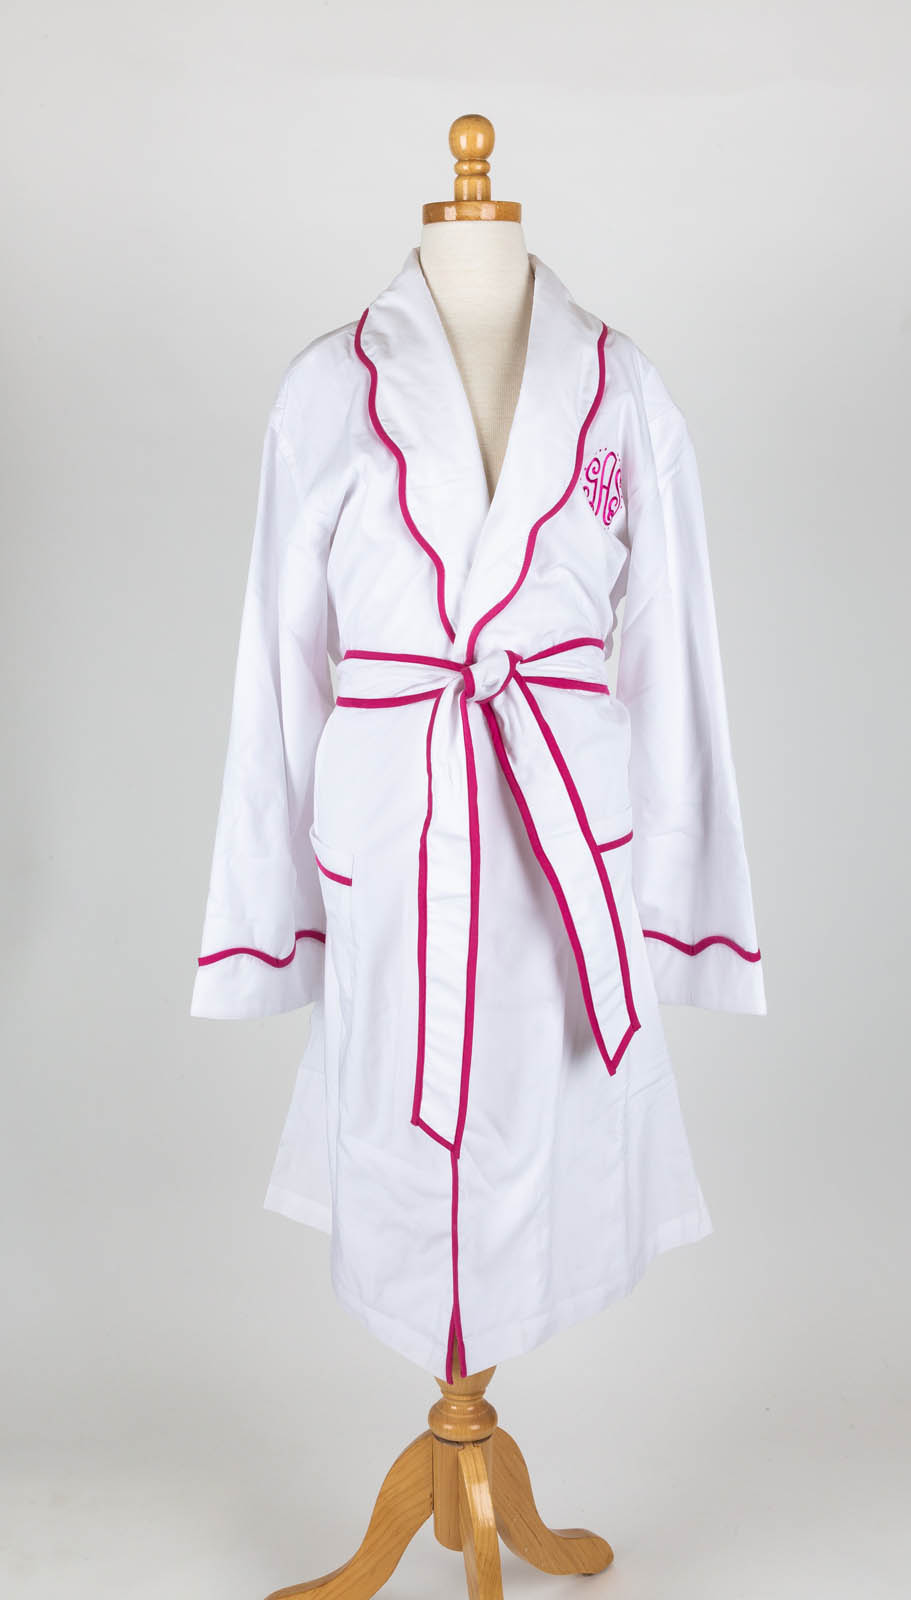 Scallop collar white poplin robe with Kate Monogram (available unlined or terry jersey lined)